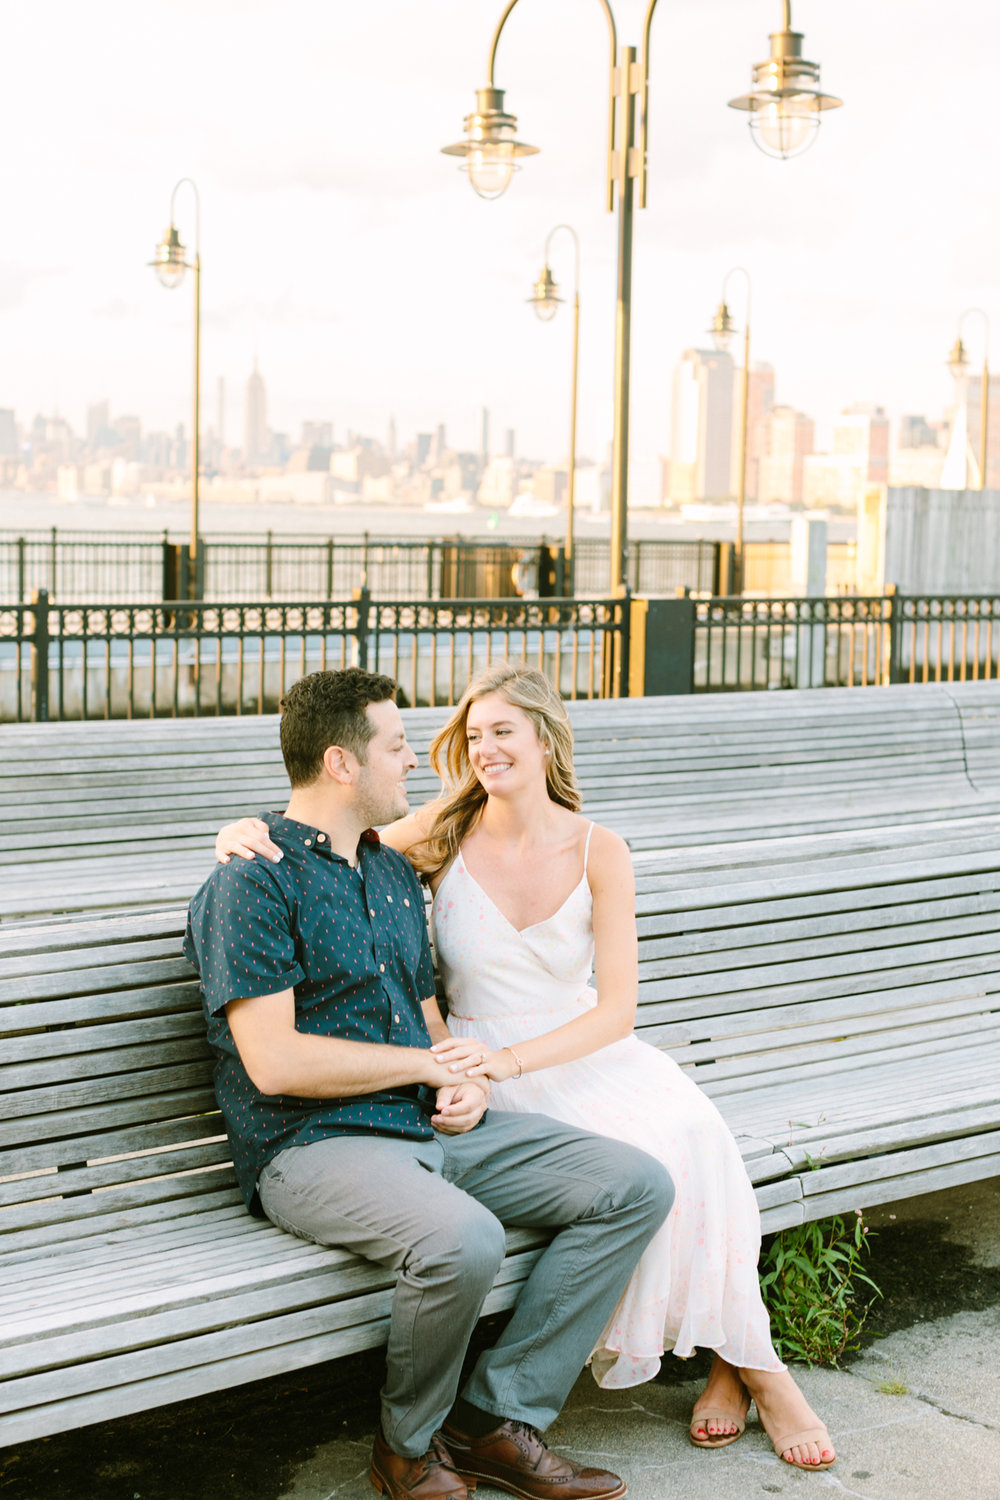 NYC-skyline-engagement-session-by-Tanya Isaeva-69.jpg